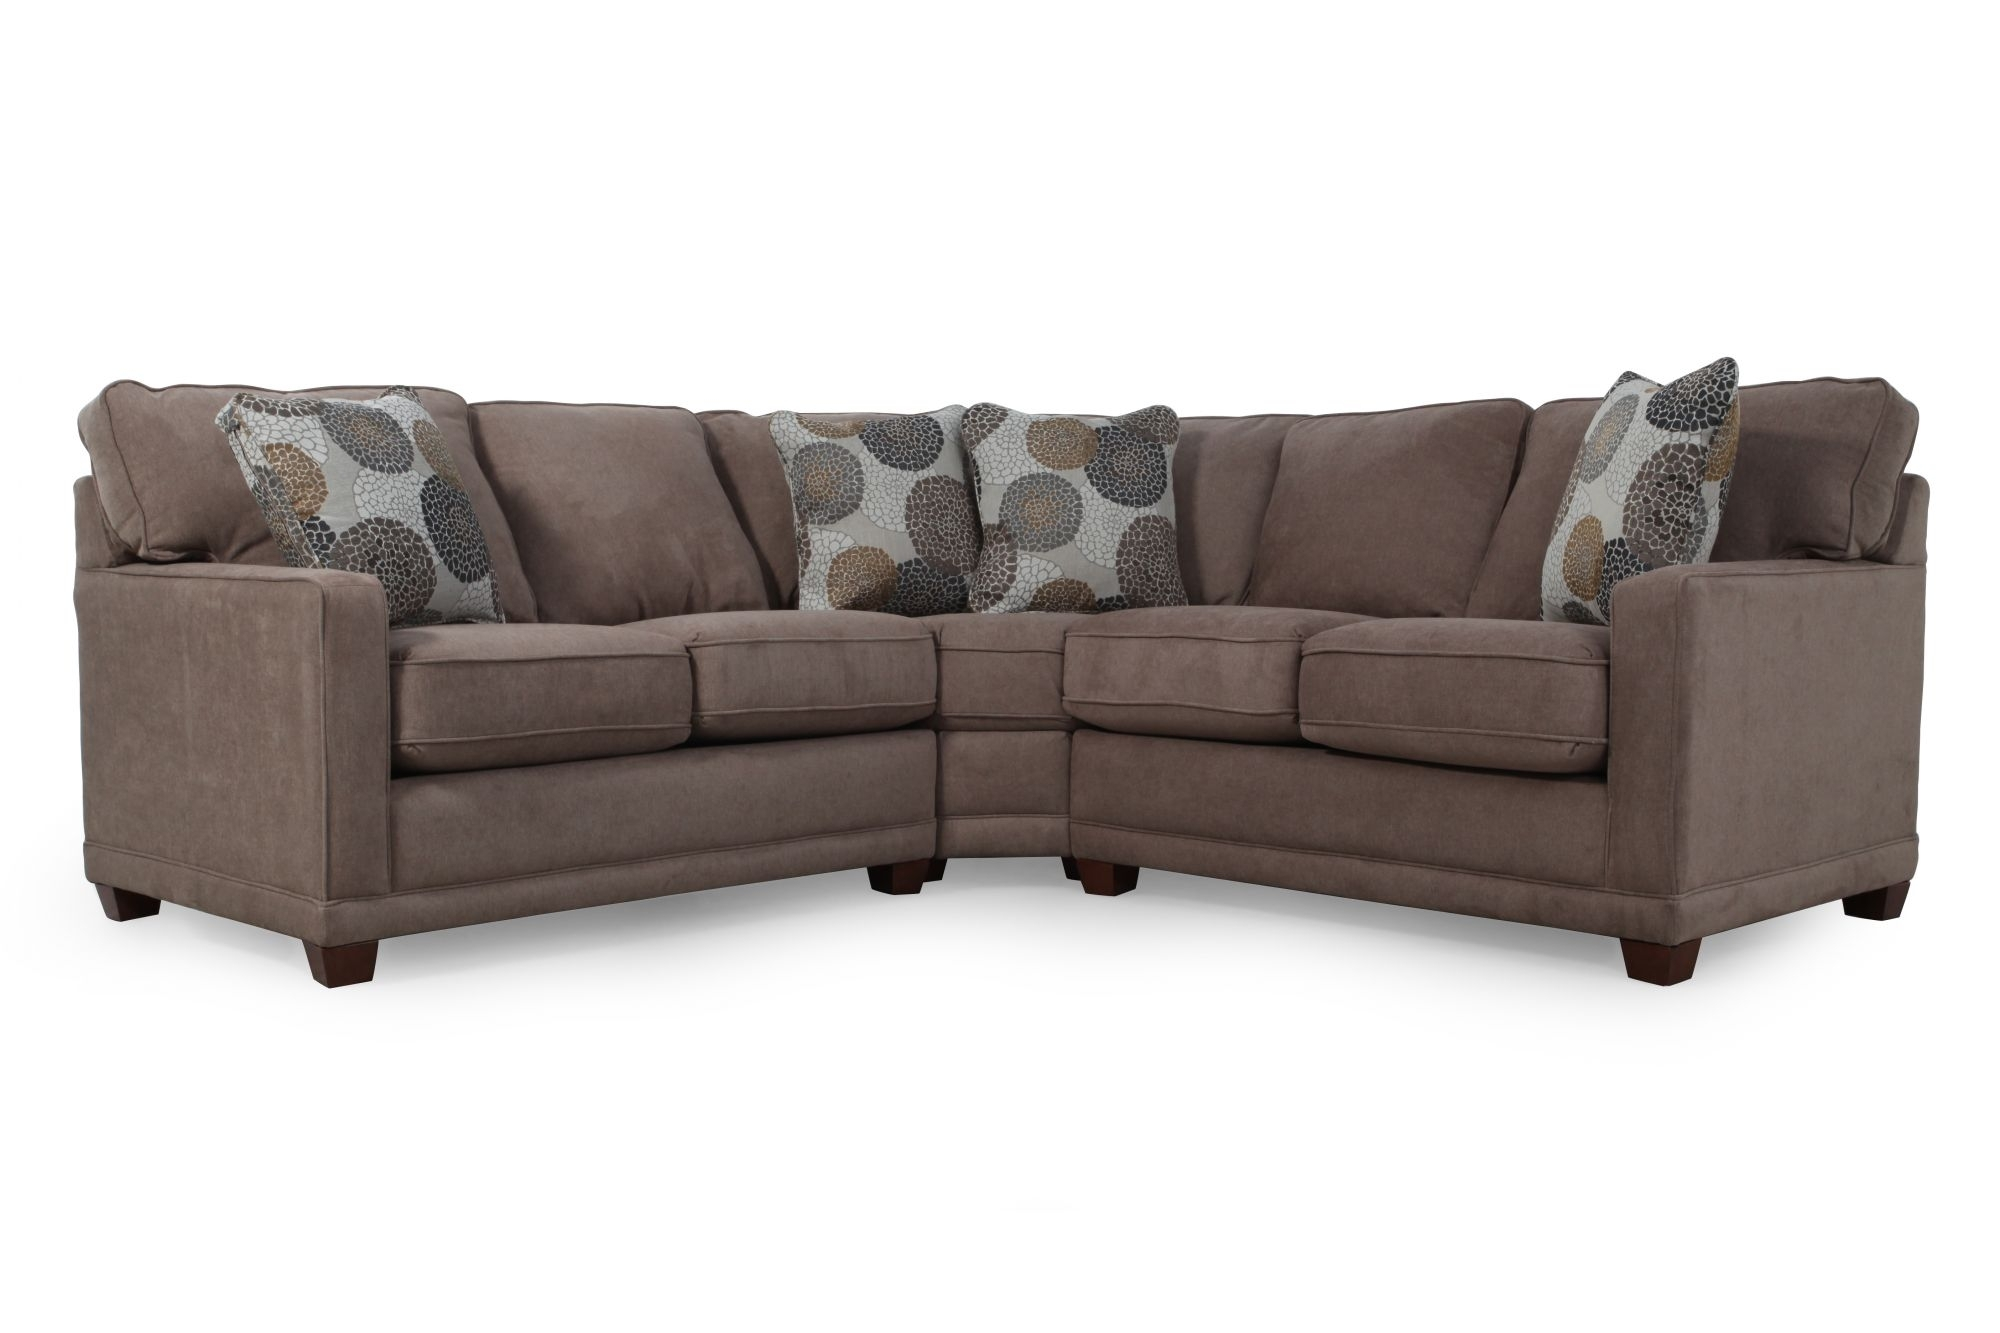 Lazy Boy Sectional Sofa For Sectionals Practical Furniture Exist In Lazy Boy Sectional Sofas (Image 5 of 10)